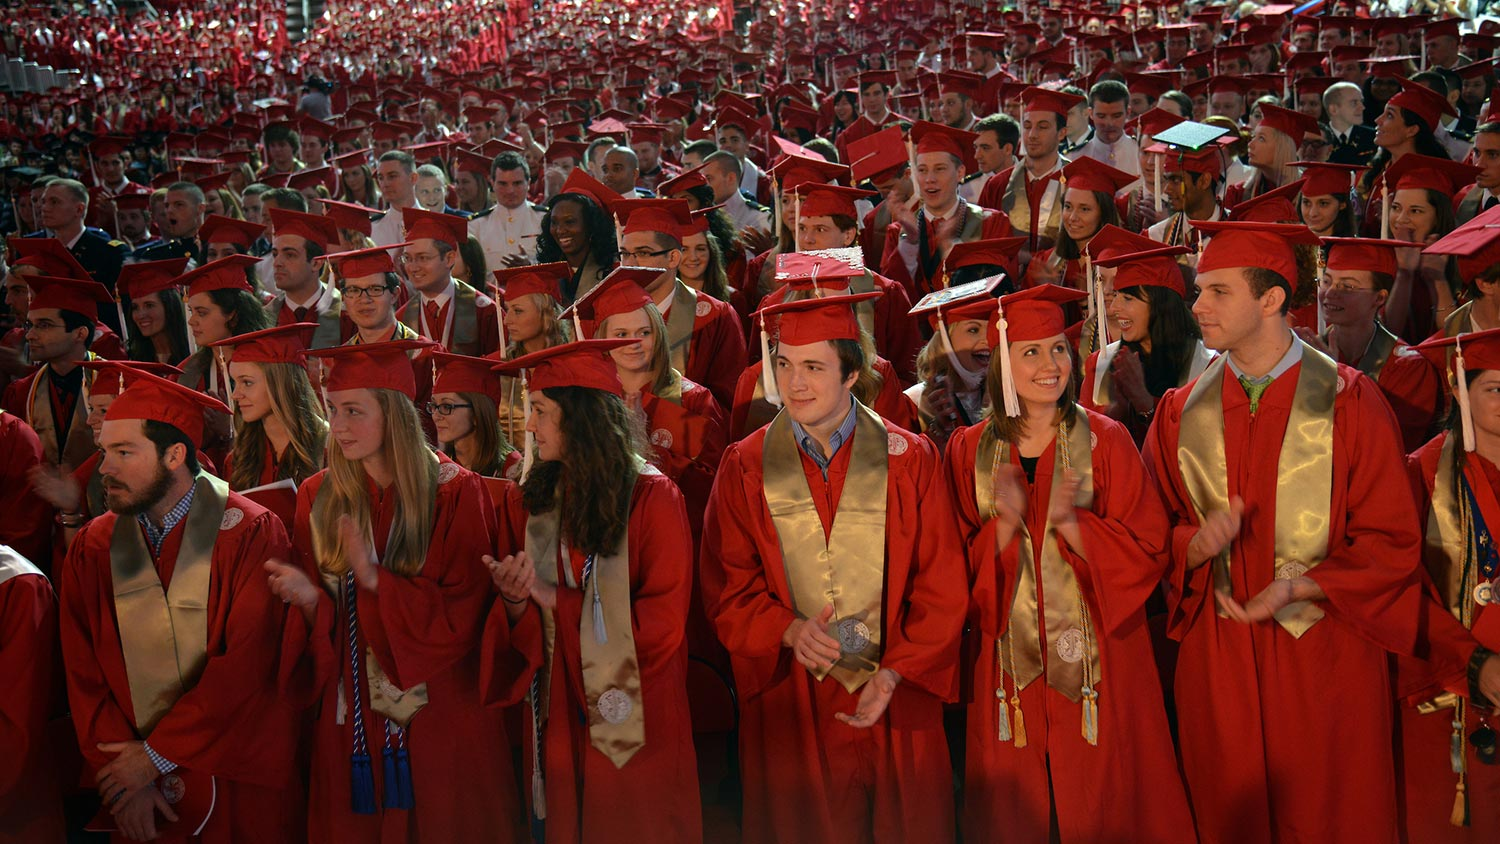 Sustainability  Nc State Graduation Gowns. Bible Verses For Graduating Seniors. E Juice Label Template. Simple Business Continuity Plan Template. Create Office Controller Cover Letter. Simple Hvac Installer Cover Letter. Sc High School Graduation Requirements. Free Press Kit Template. First Day Of 3rd Grade Sign